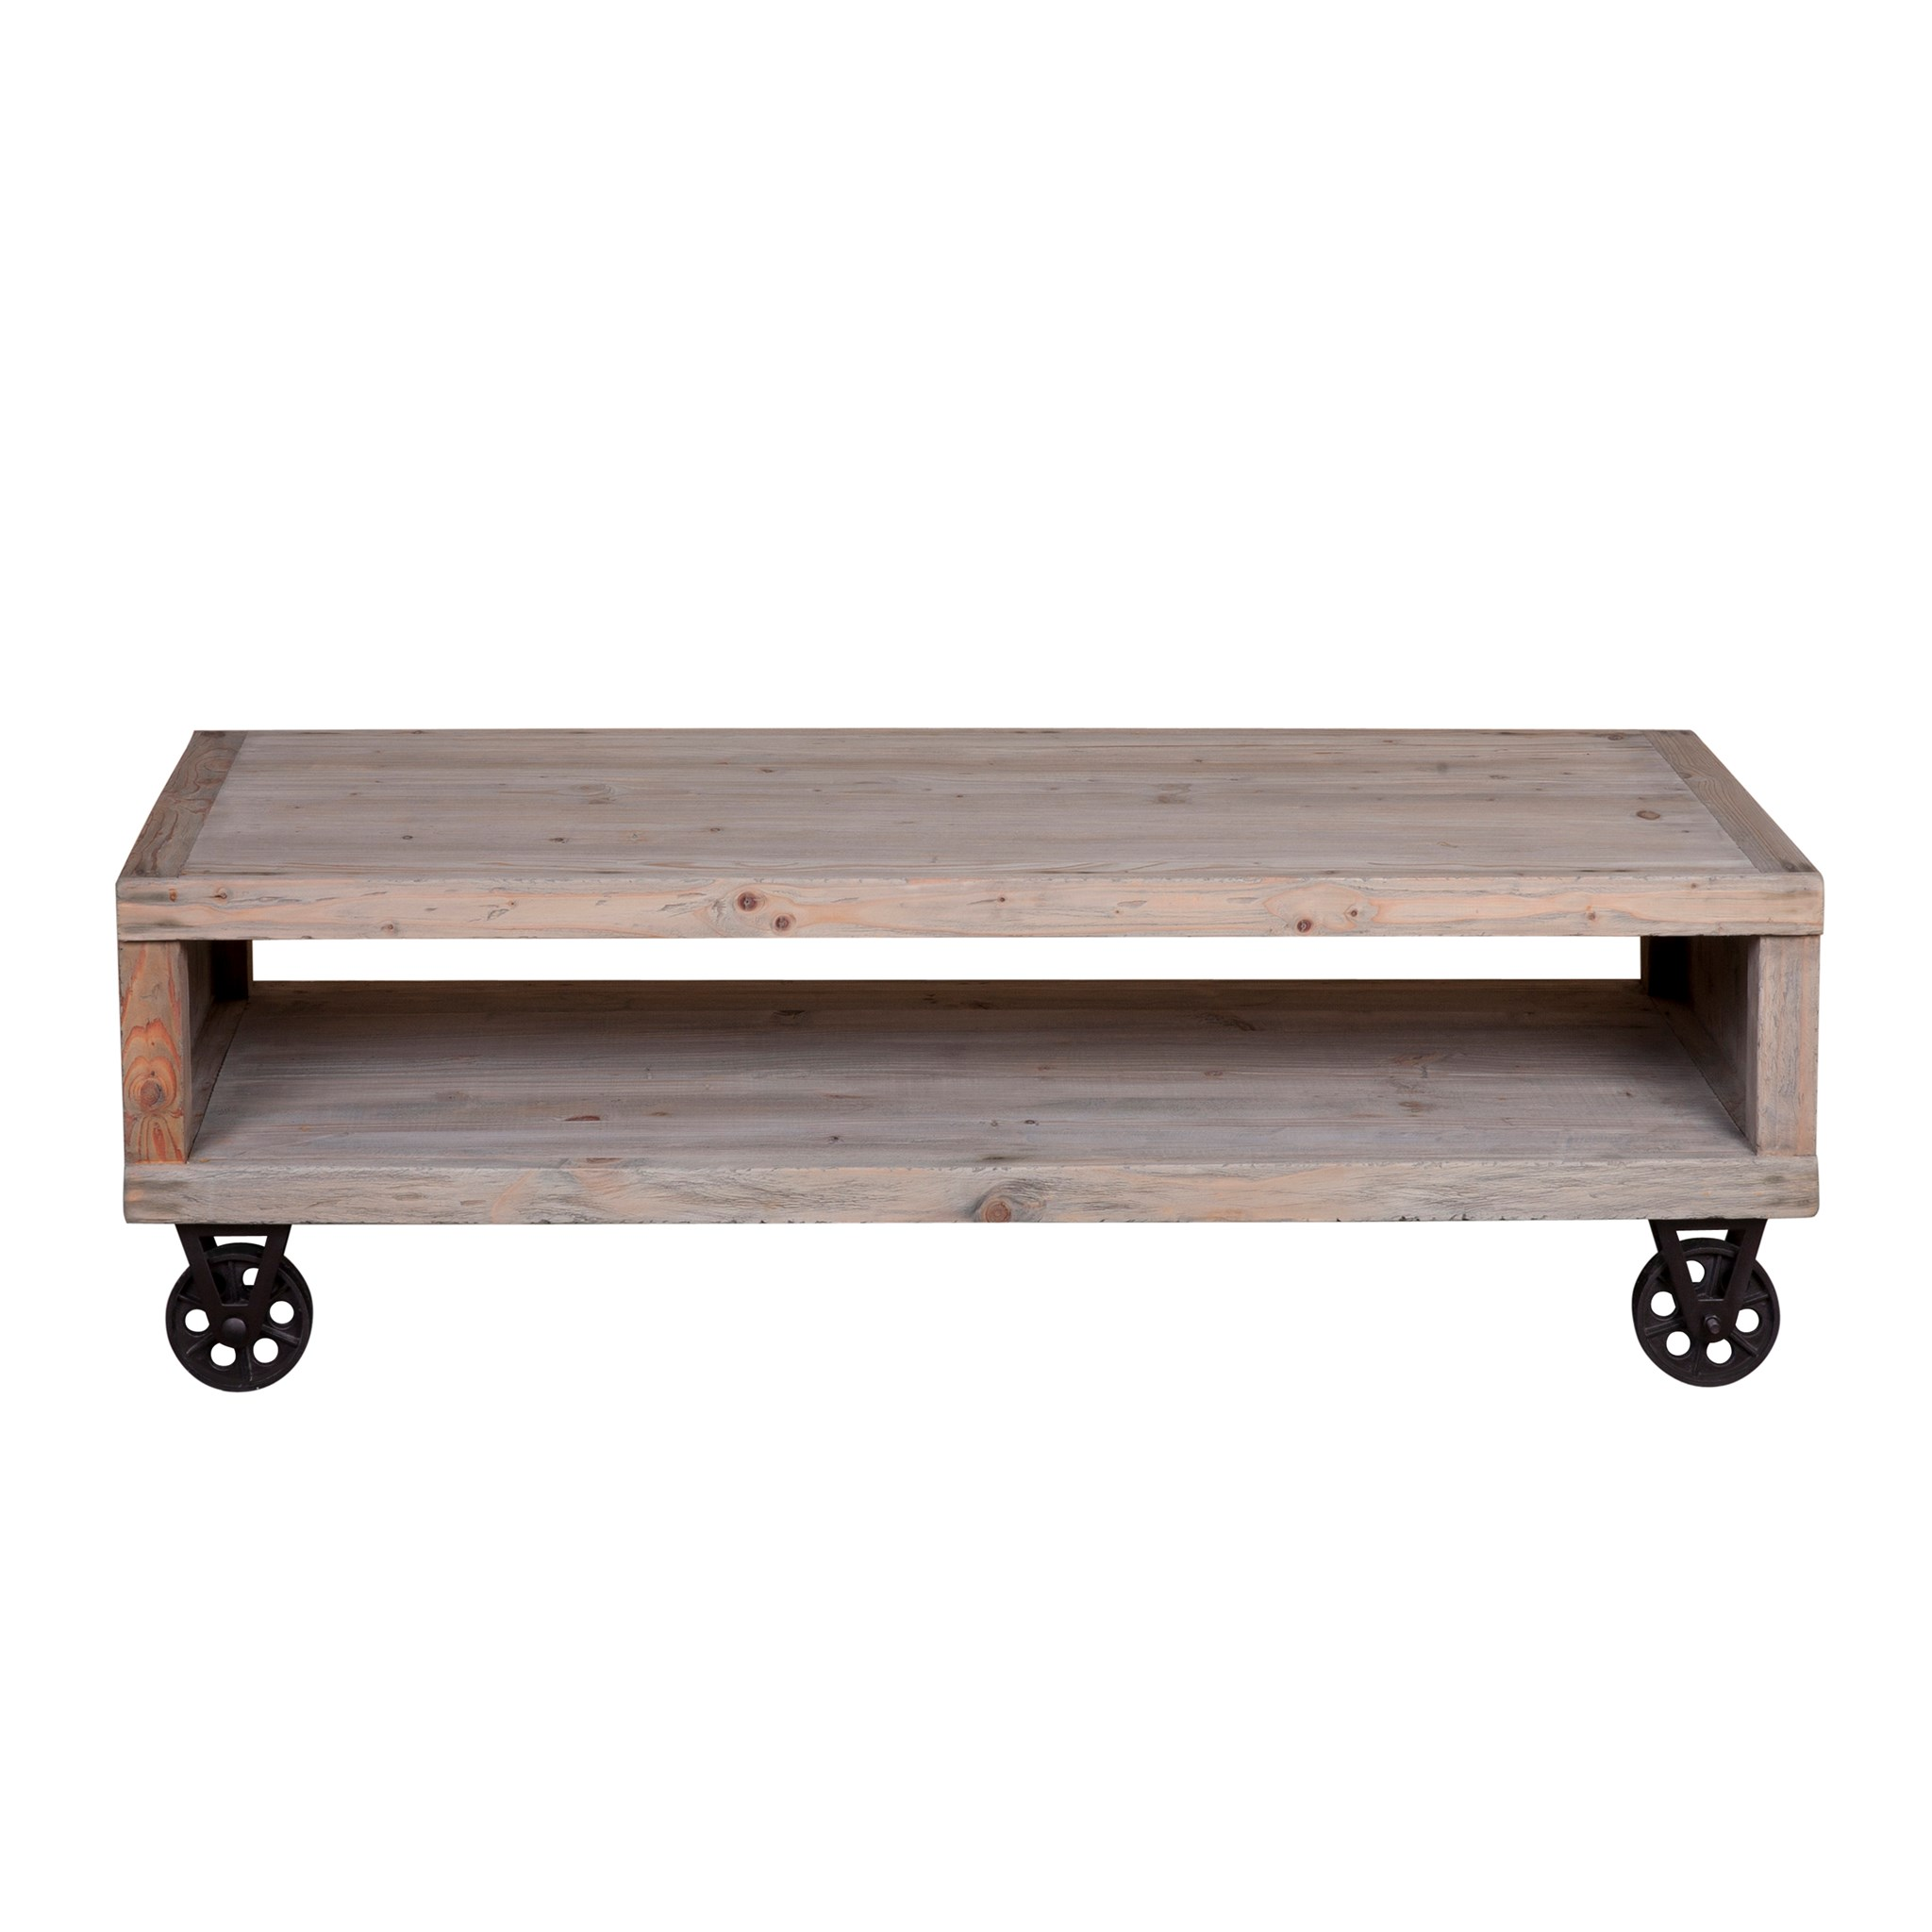 (LS) Cologne Soft Industrial Coffee Table With Metal Castors (K/D)